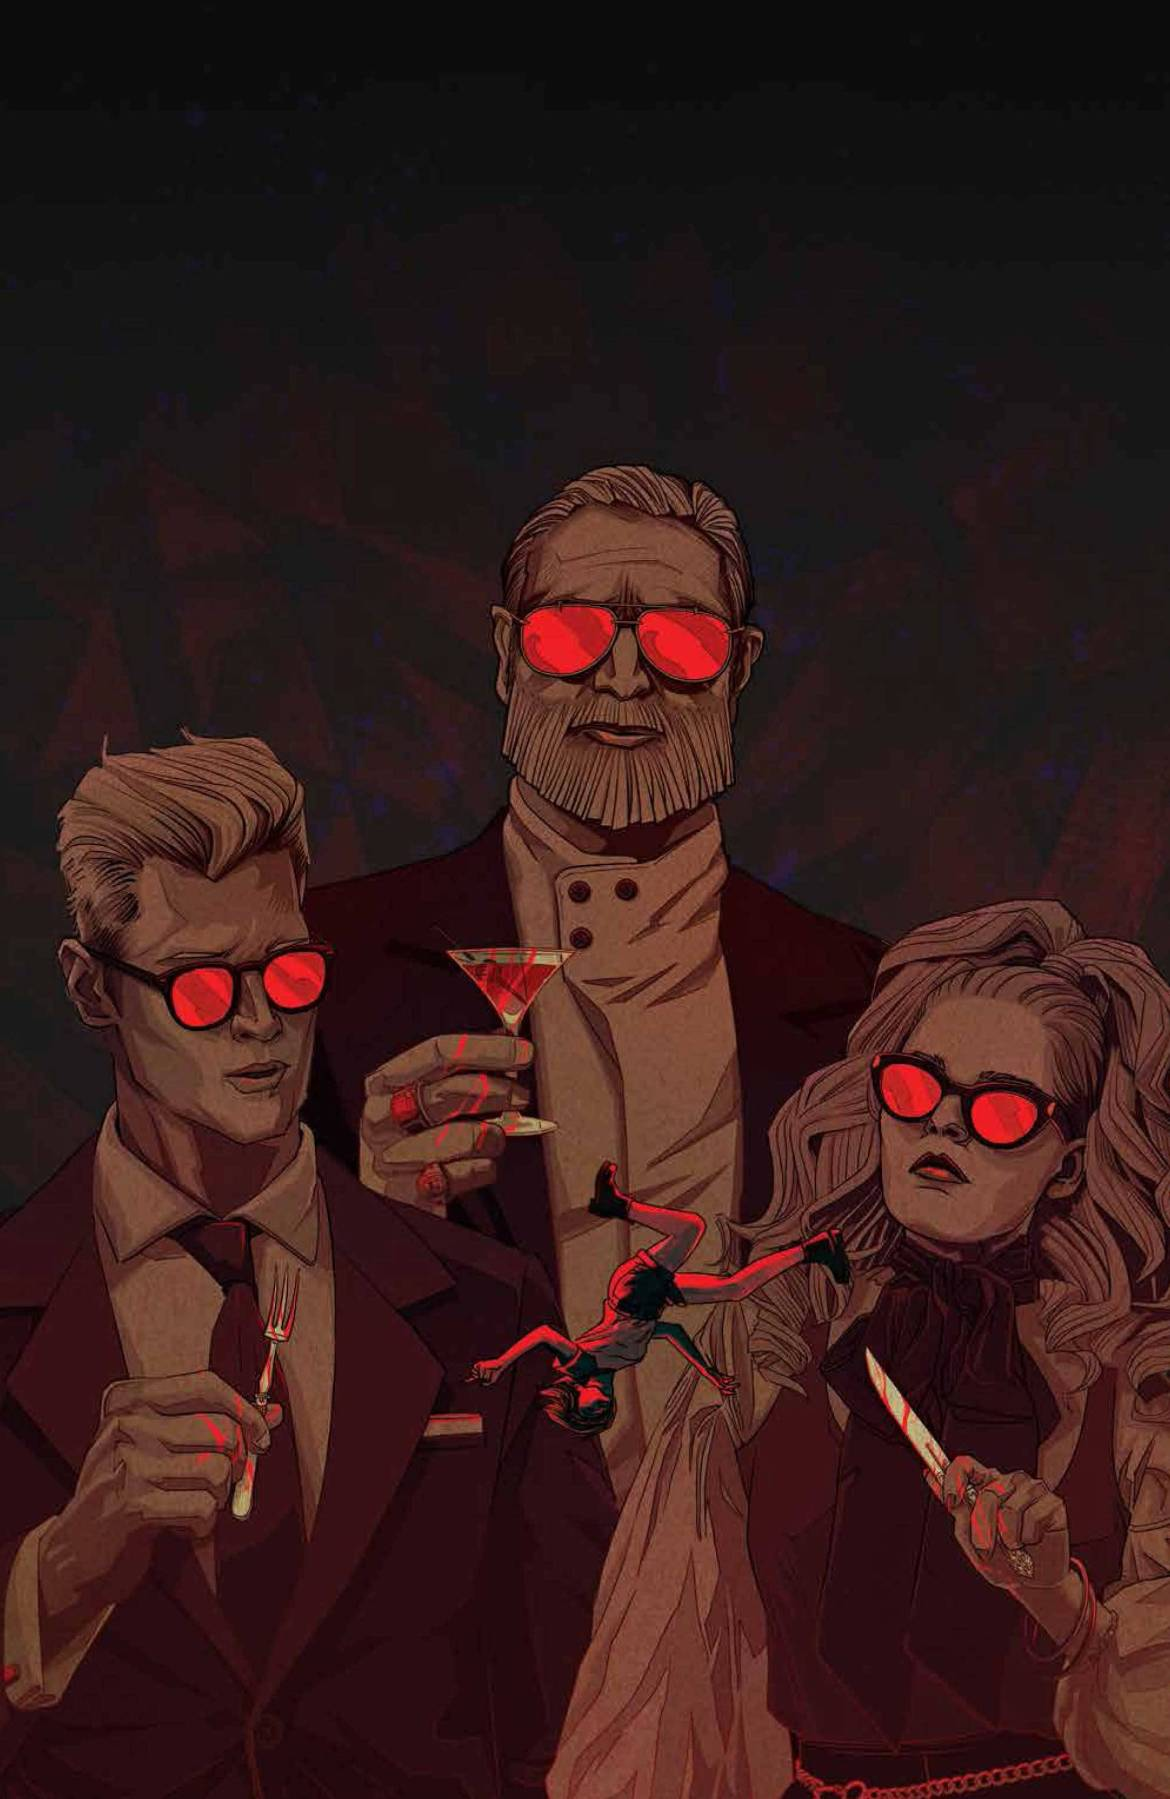 STL193843 ComicList Previews: EAT THE RICH #1 (OF 5)